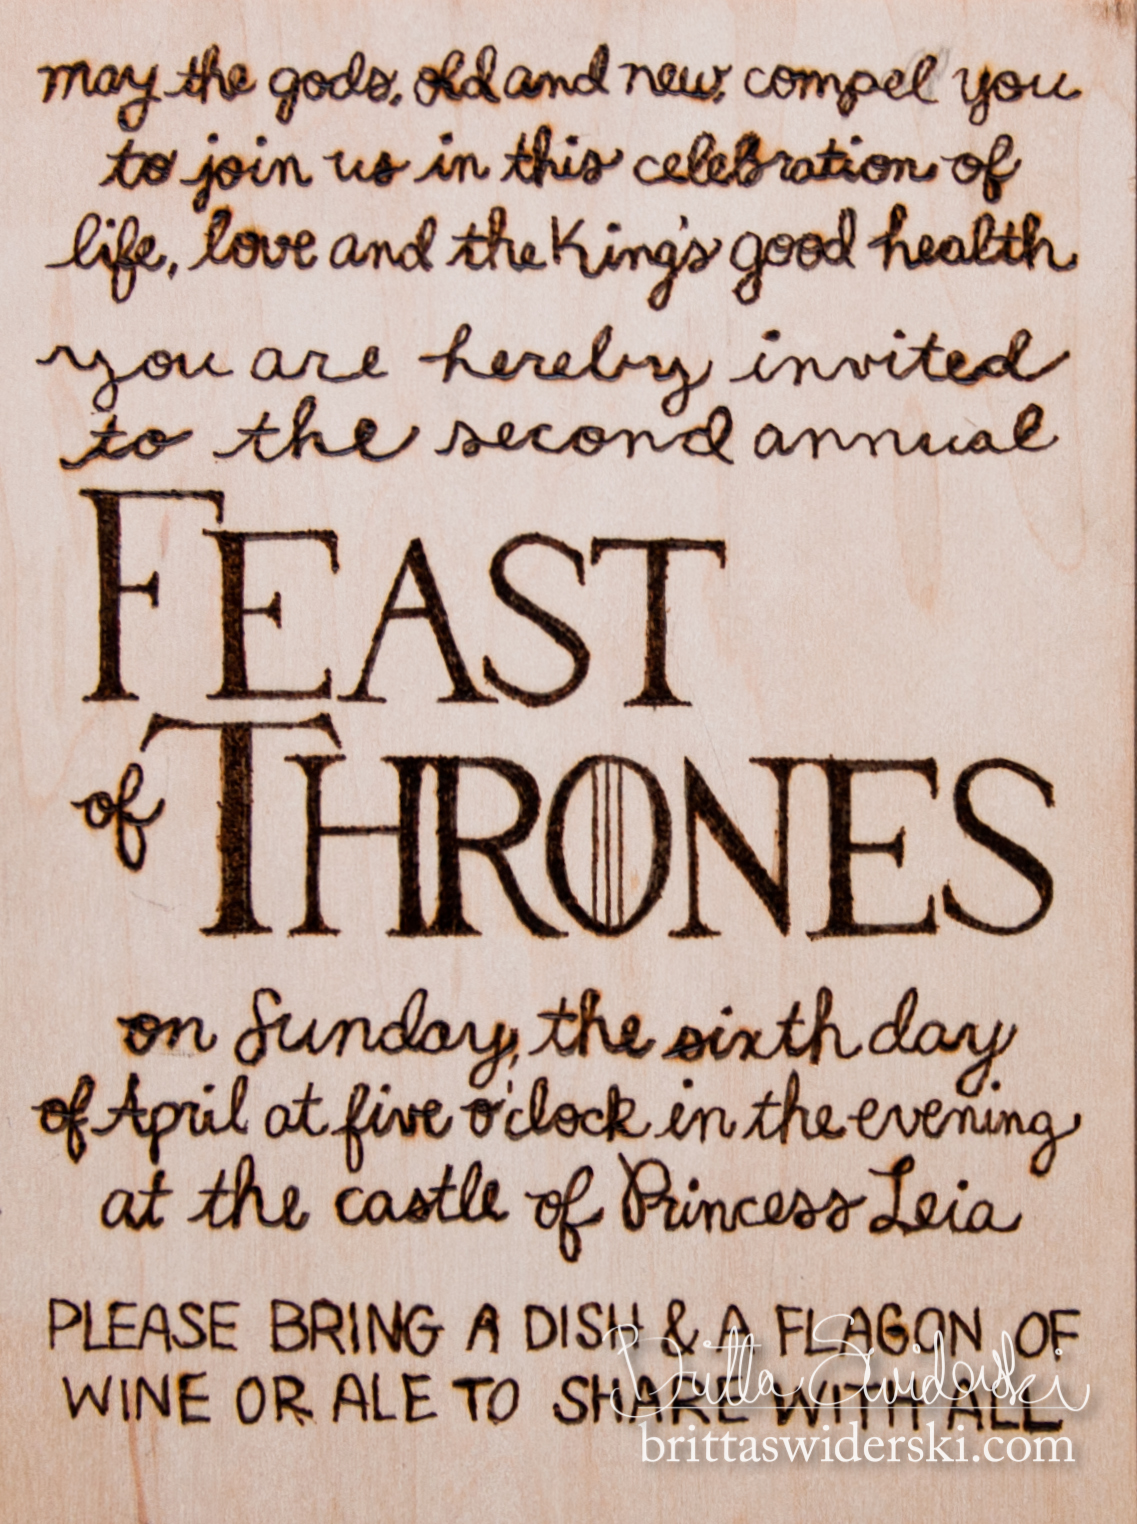 game of thrones birthday invitation ; feast-of-thrones-invite-woodburning-invitation-by-britta-swiderski_today-is-a-very-special-holiday-on-games-of-thrones-birthday